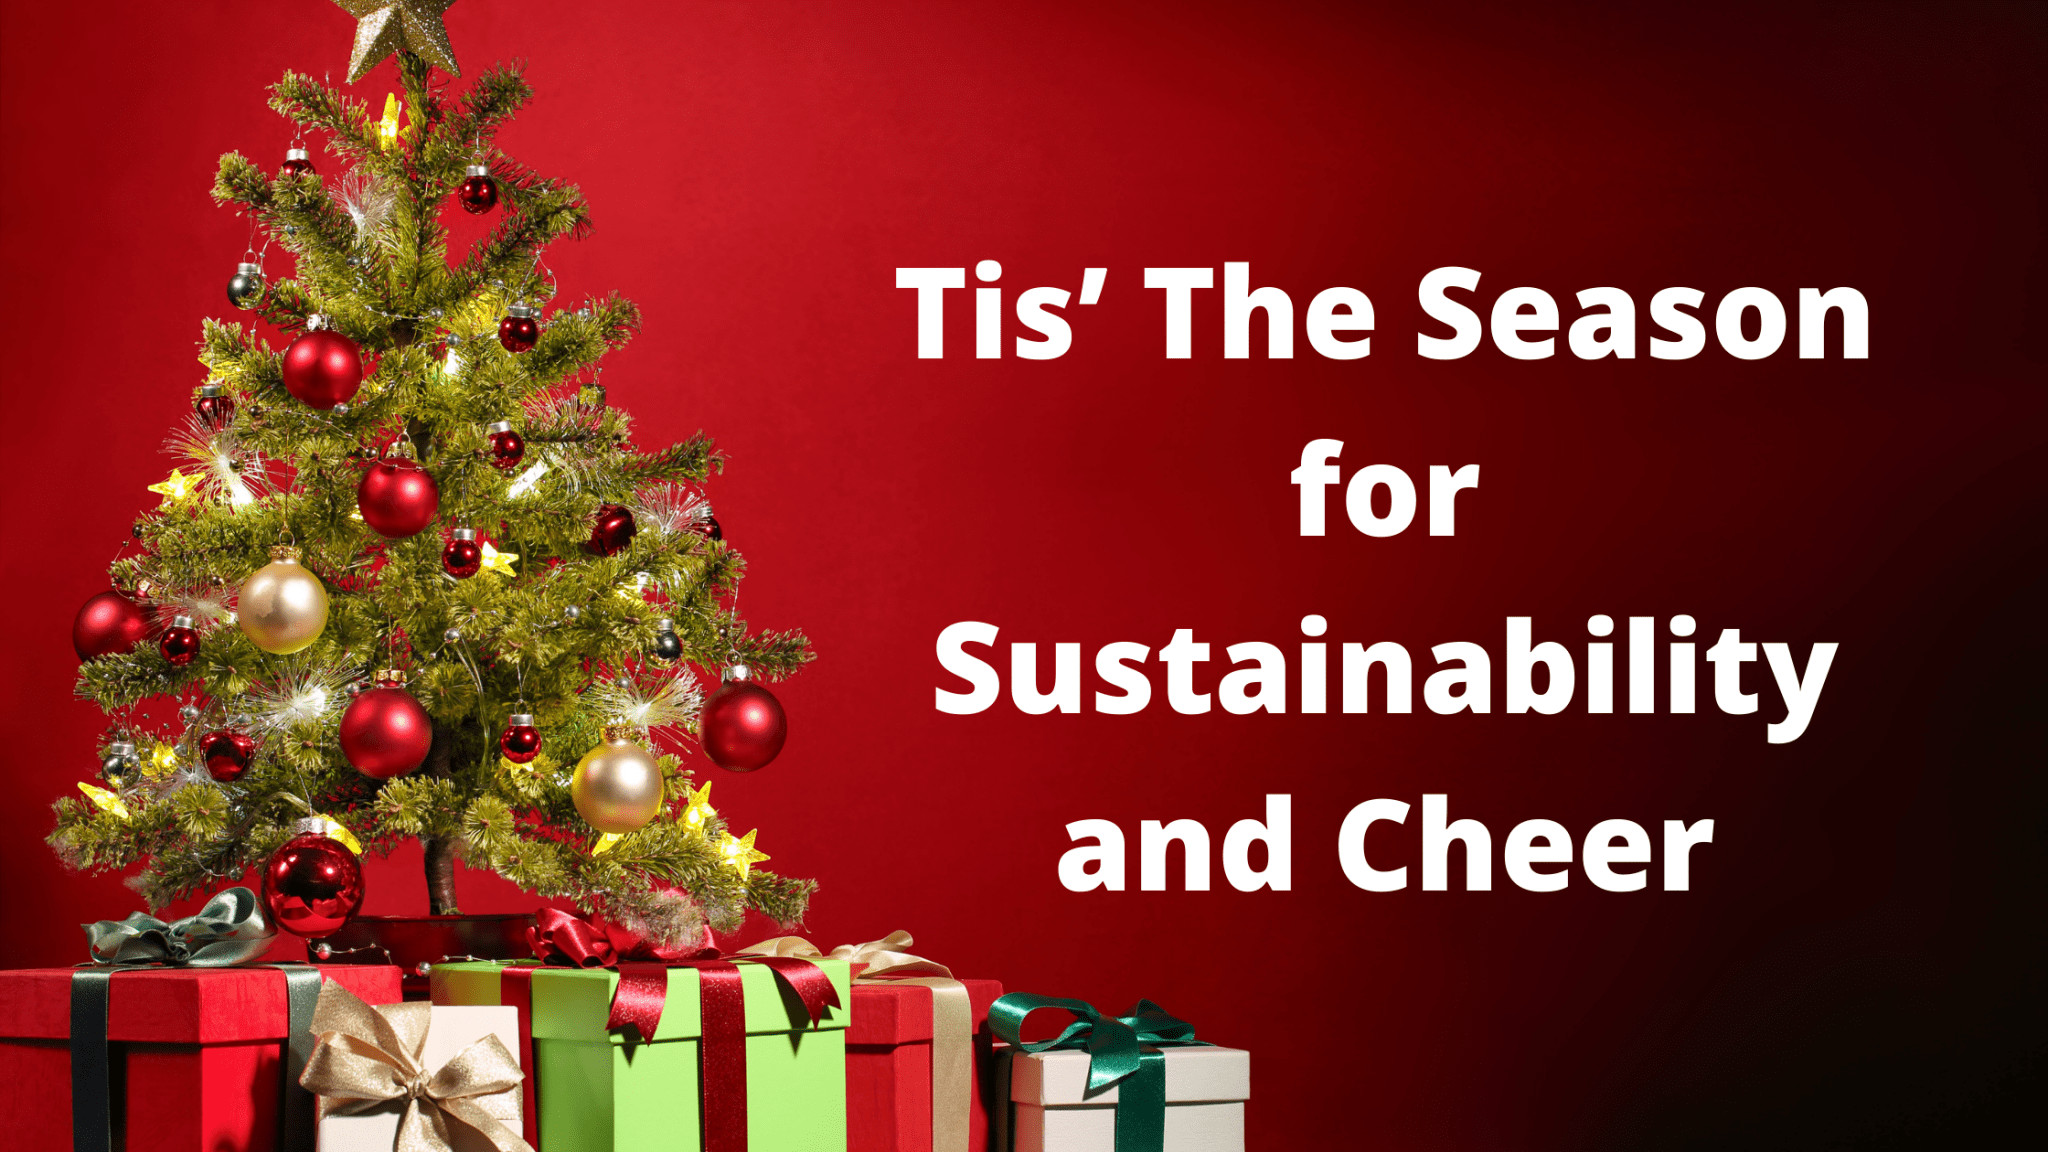 Tis' The Season for Sustainability and Cheer